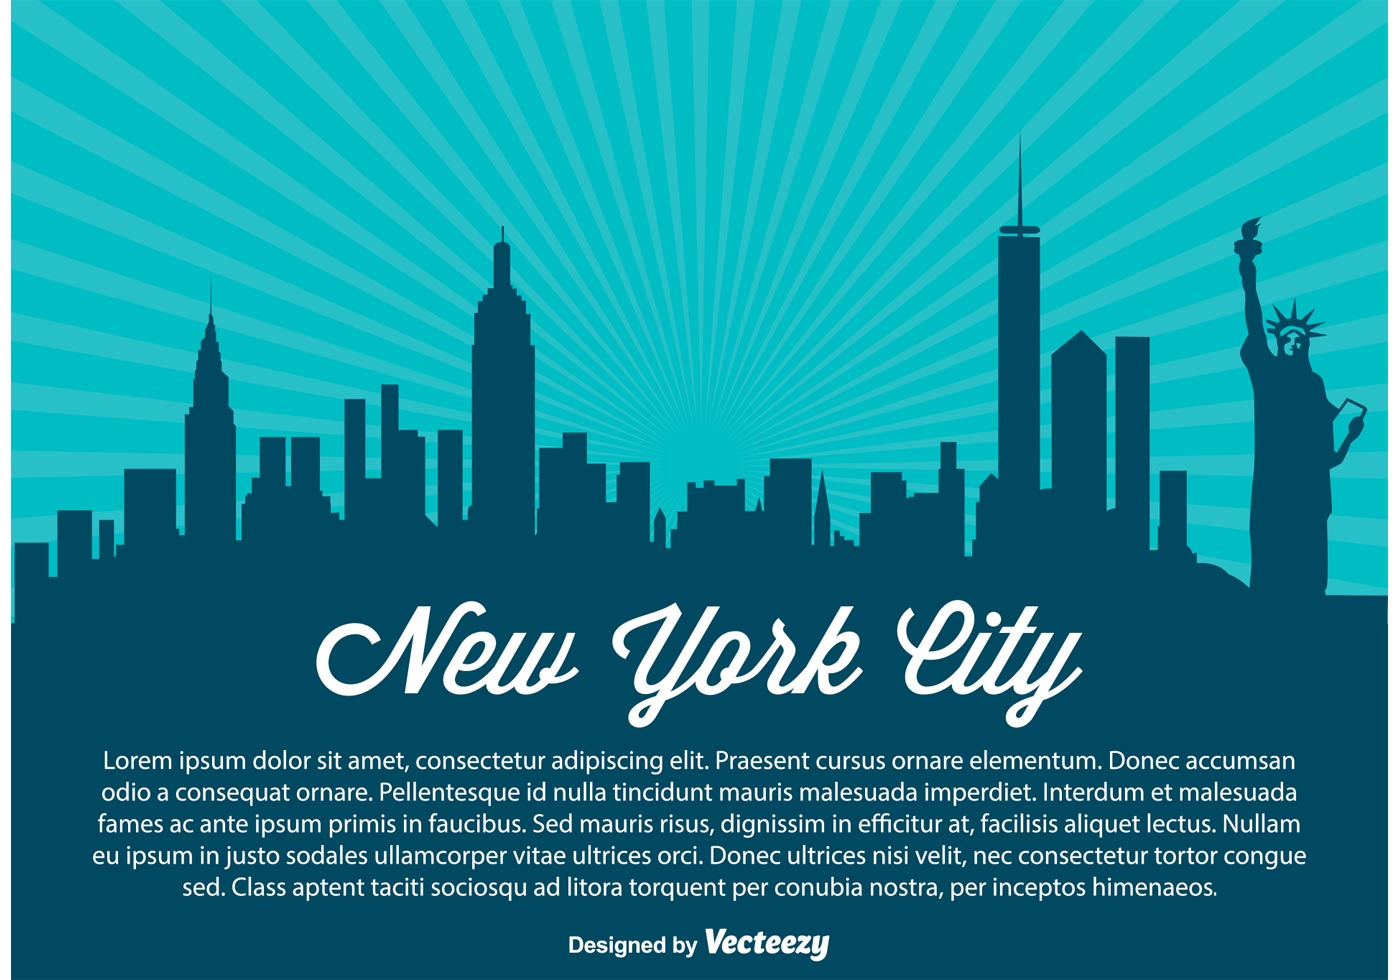 new york city illustration download free vector art Woman Lifting Weight Clip Art Weightlifter Clip Art